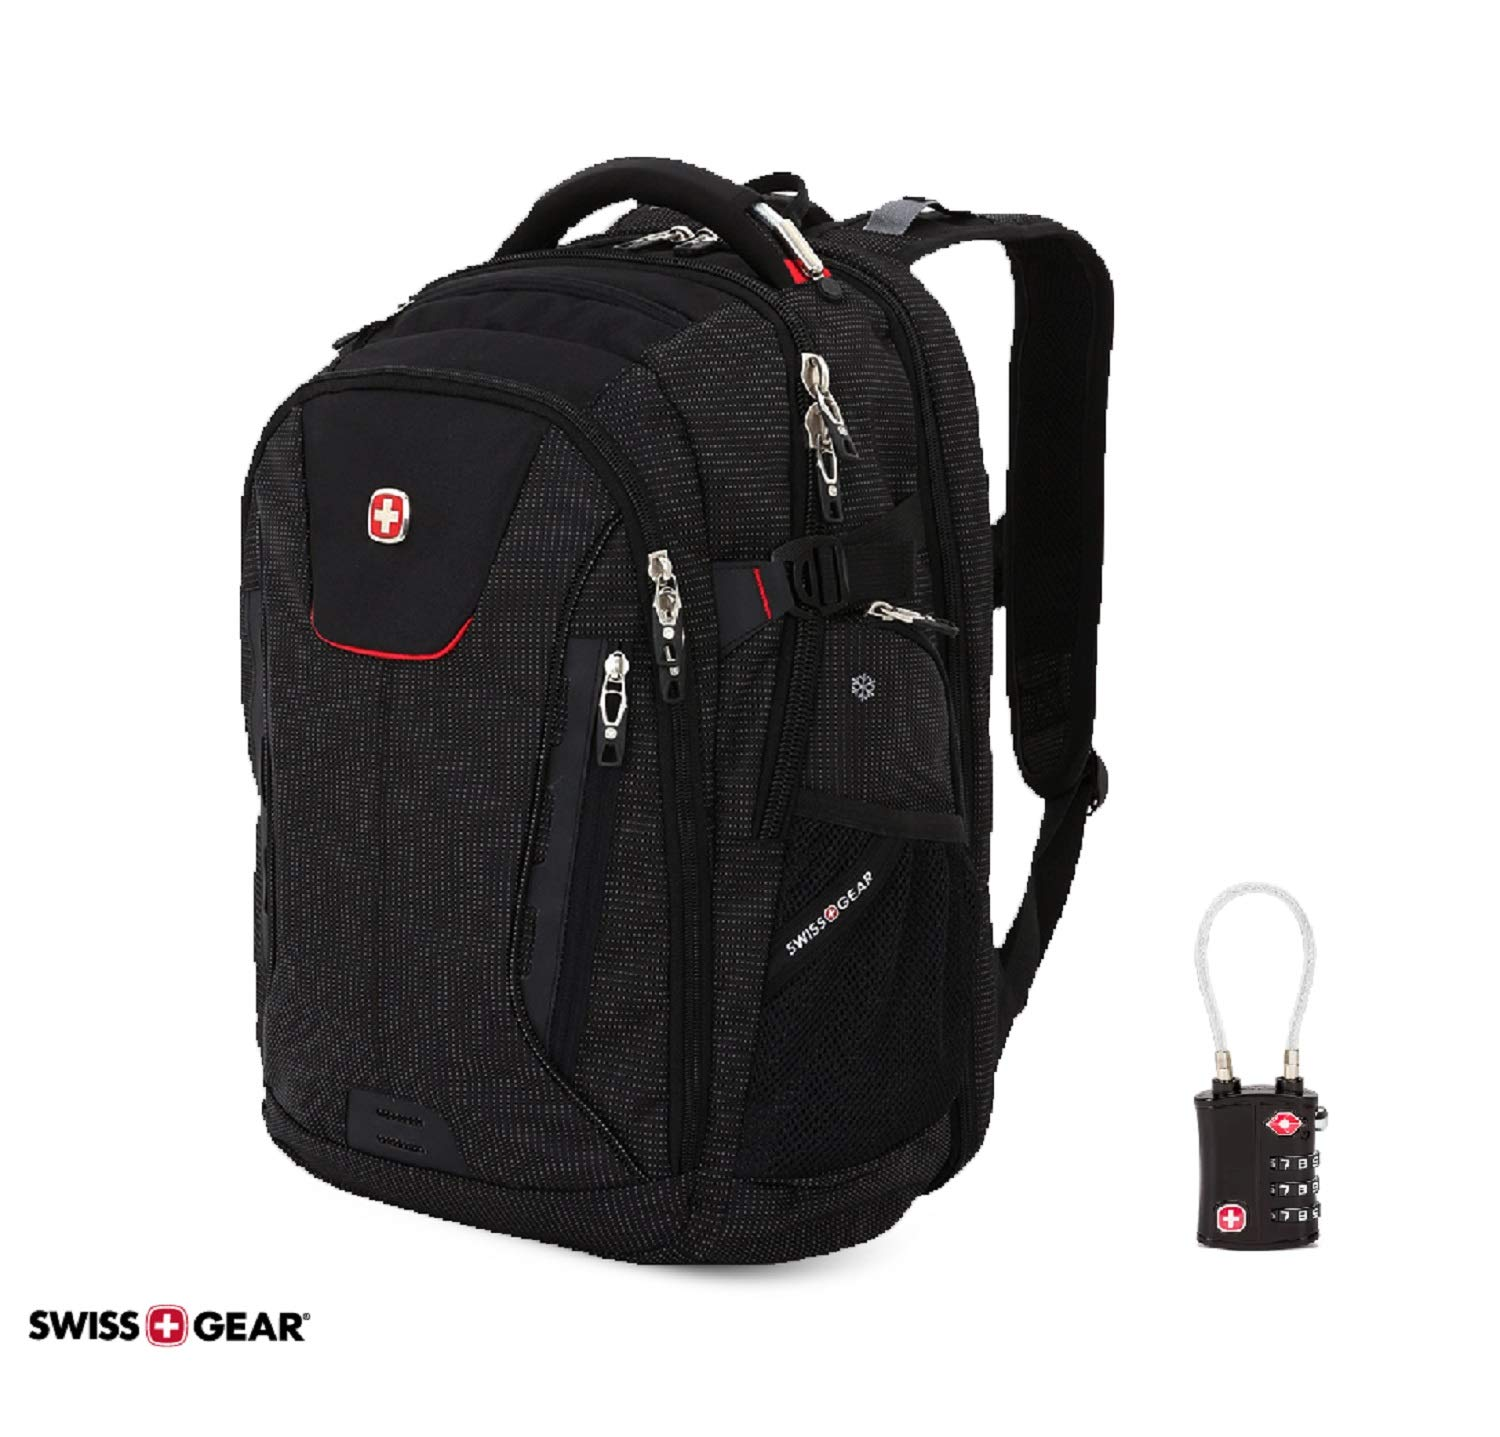 SWISSGEAR 5358 ScanSmart Ultimate Protection Organization USB Backpack (Black) with TSA Security Lock Exclusive Bundle